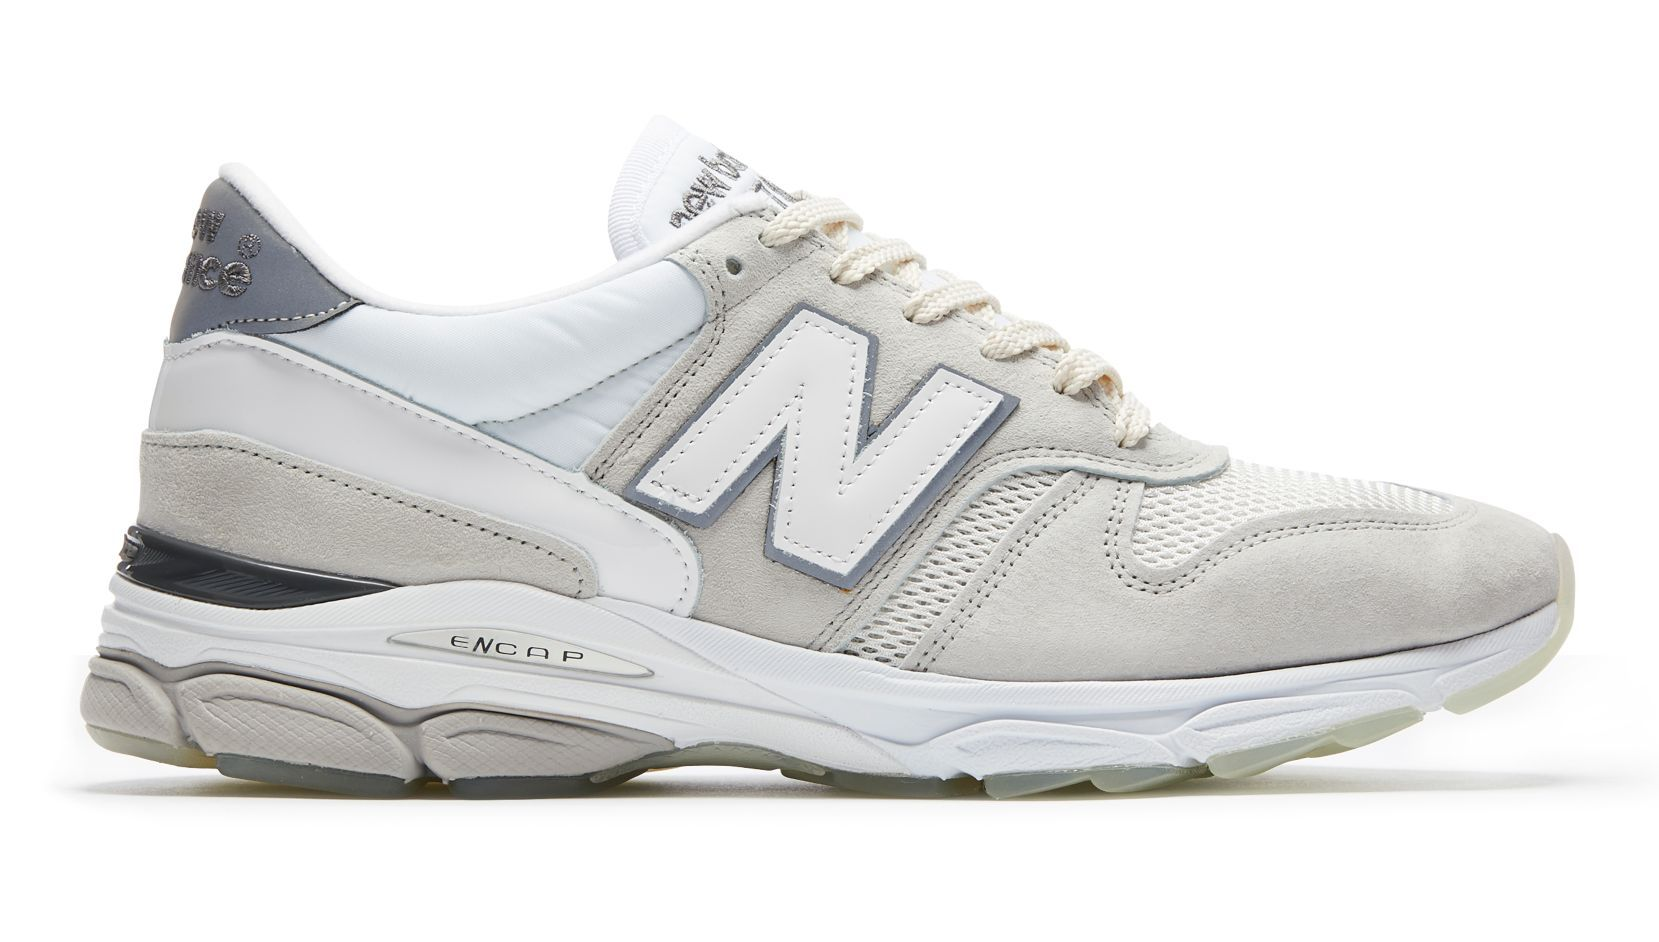 low priced 44685 96879 New Balance 770.9 Made in UK, White with Pale Grey ...